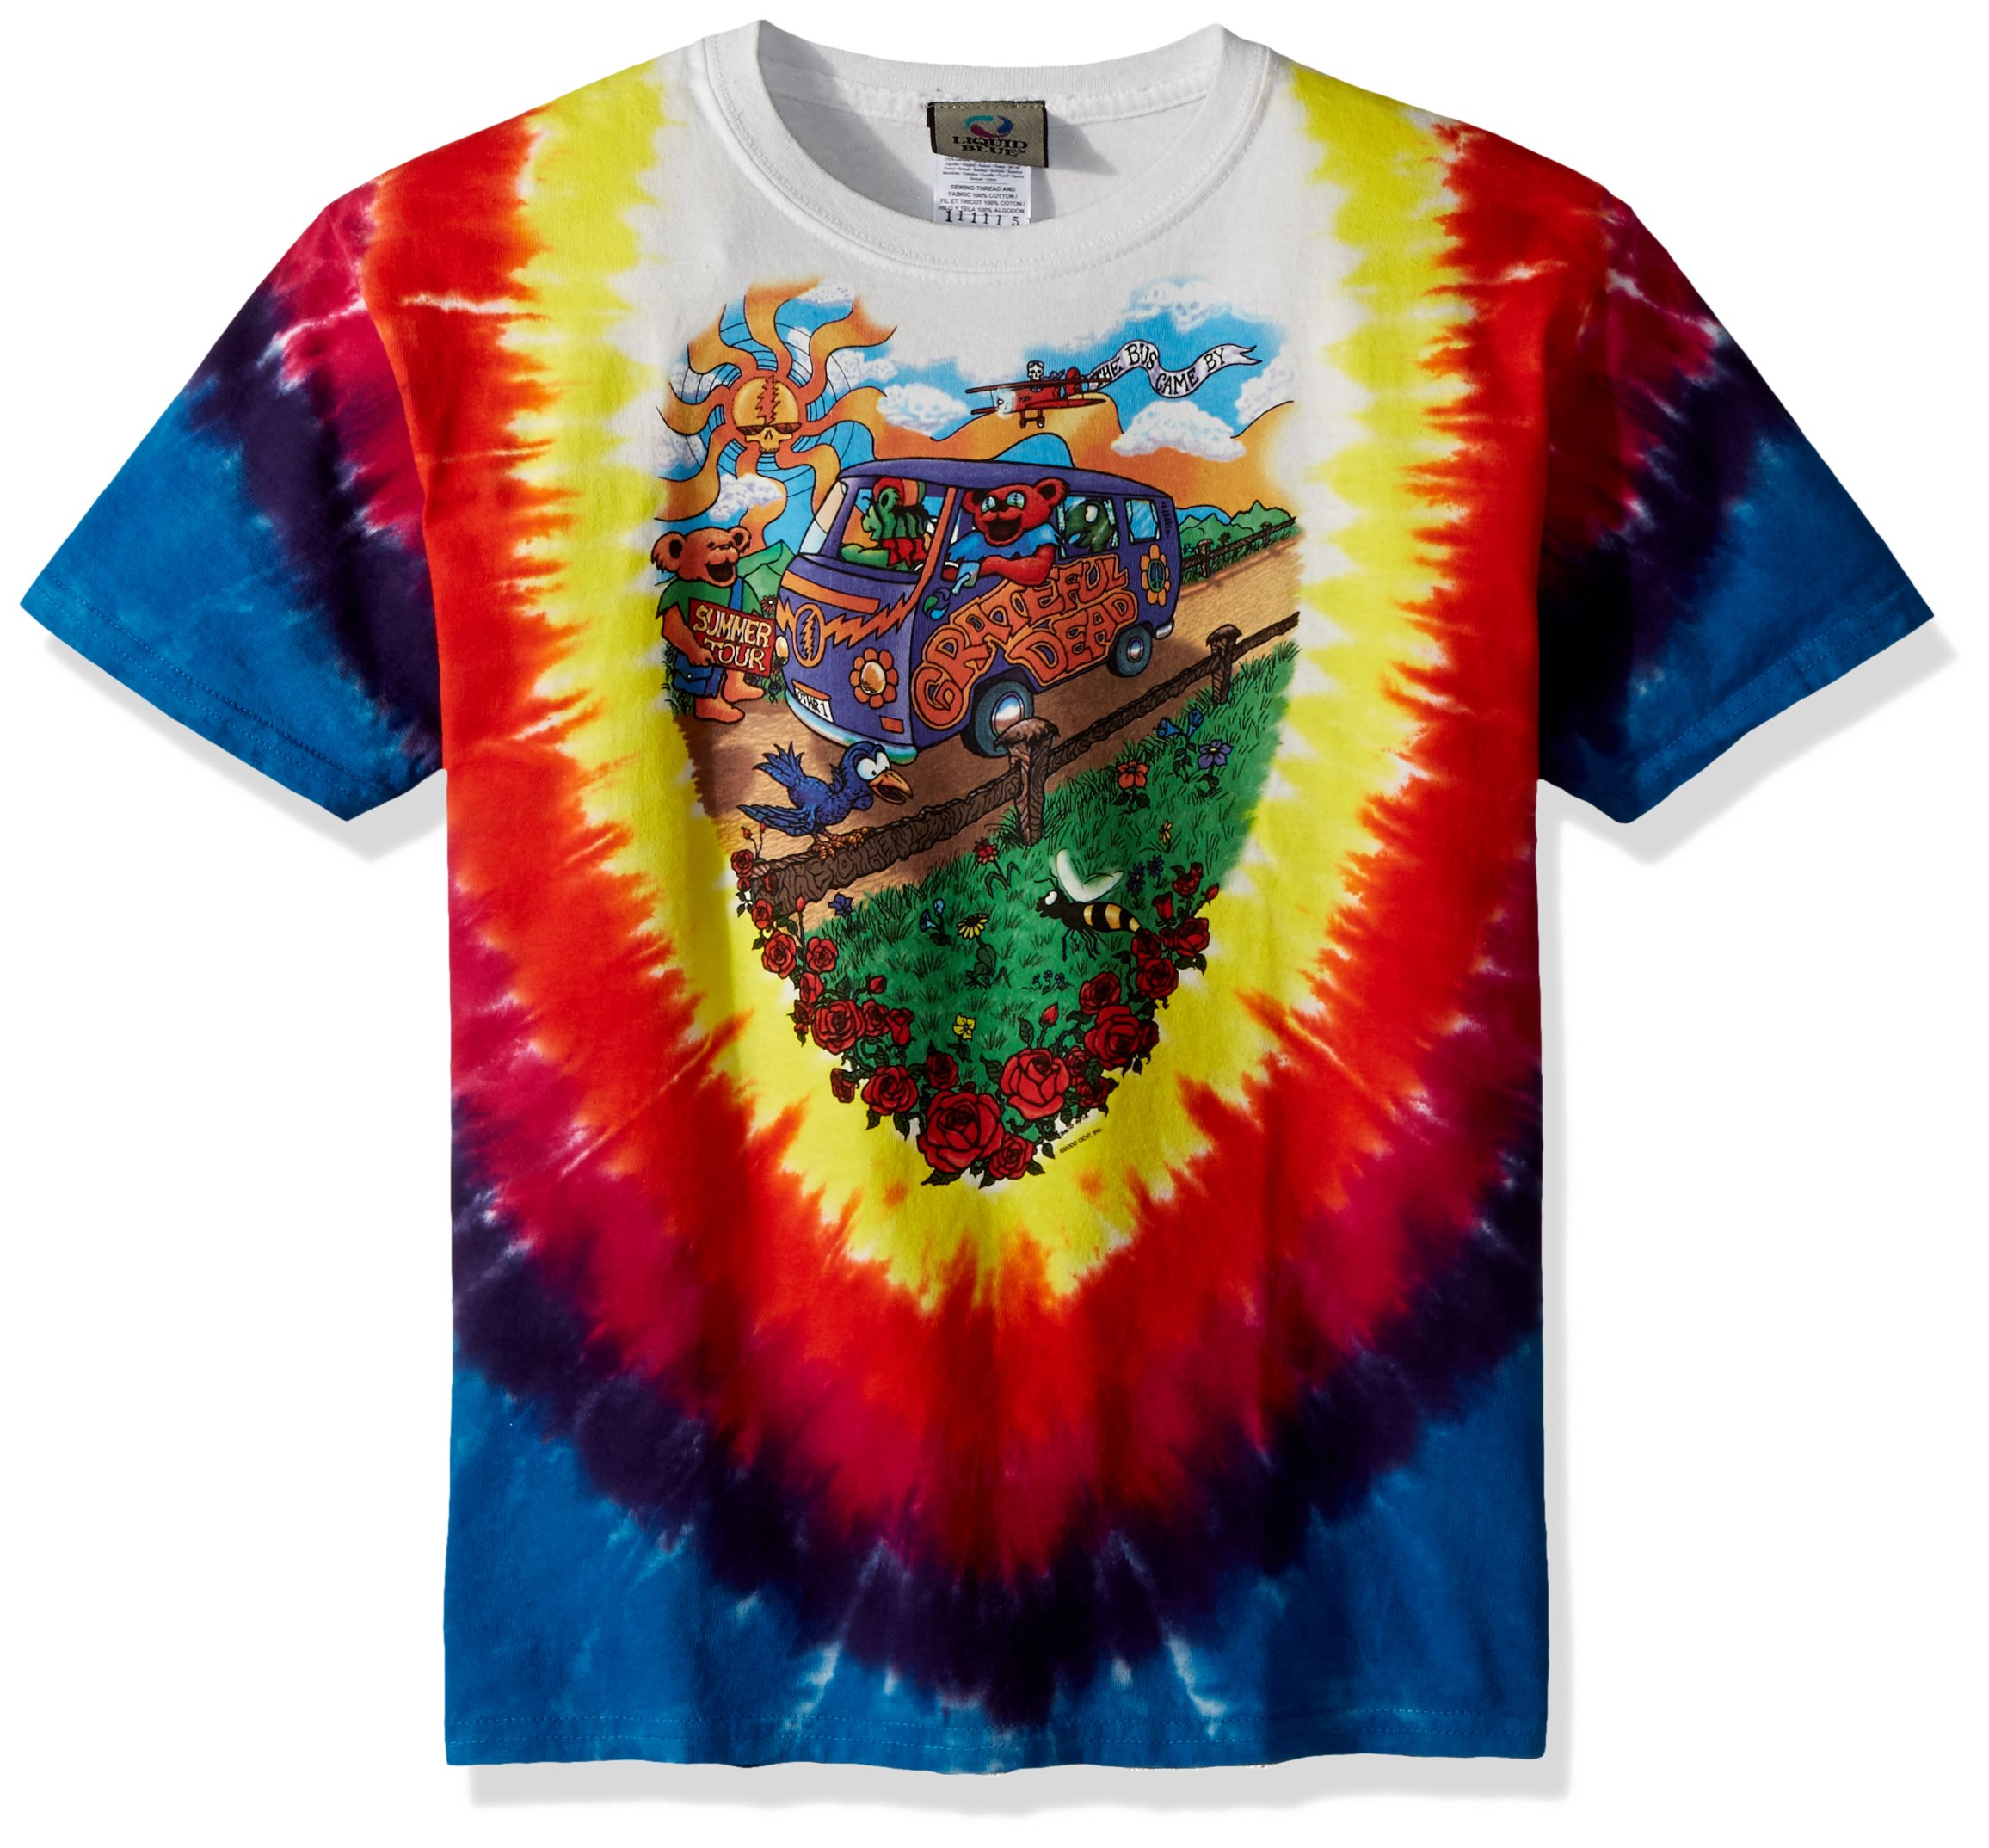 Liquid Blue Unisex-Child Big Kids Grateful Dead Summer Tour Bus Short Sleeve T-Shirt, Tie-Dye, Medium